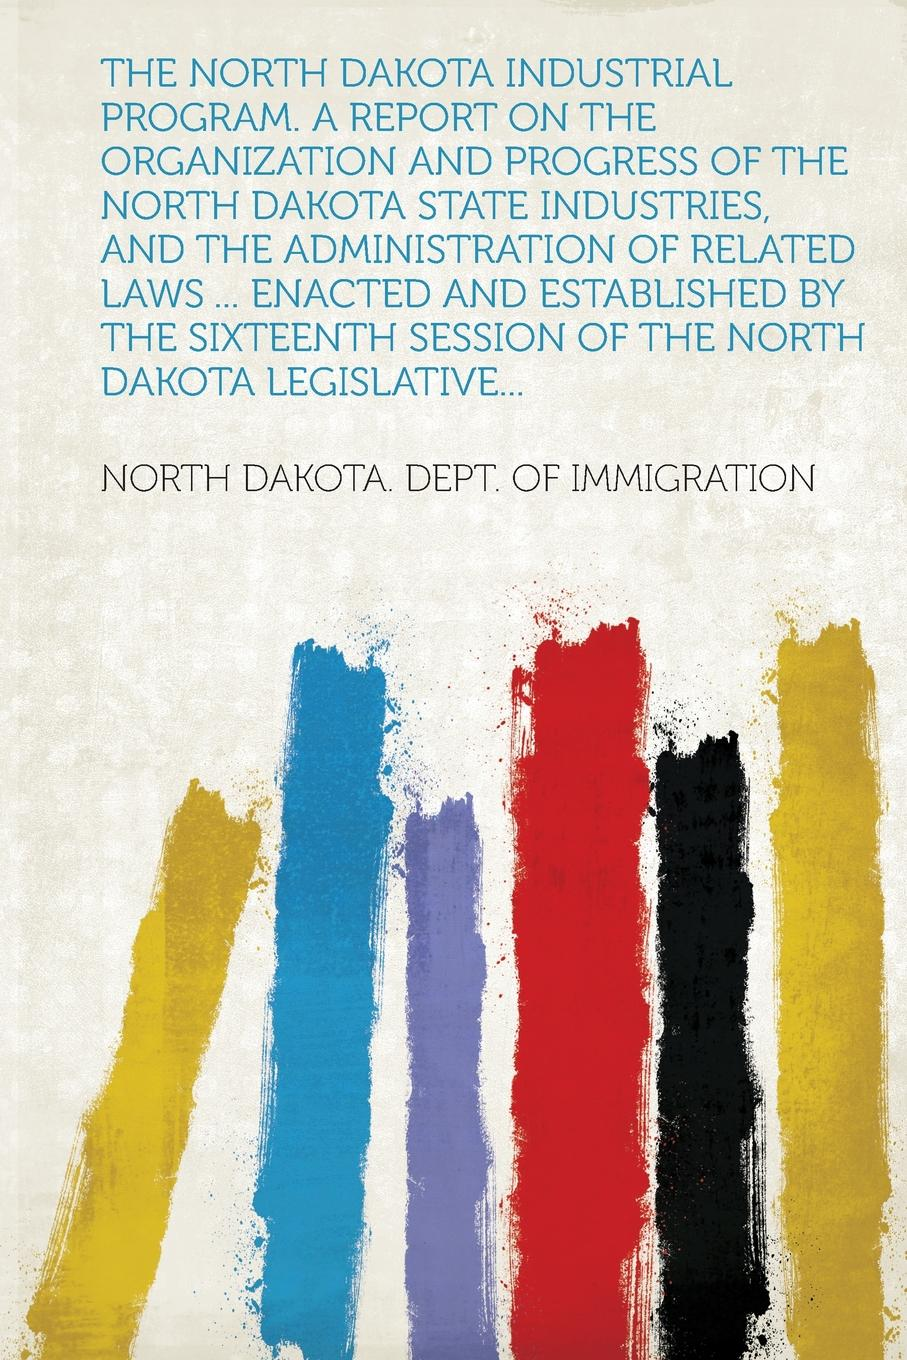 North Dakota. Dept. of Immigration The North Dakota Industrial Program. a Report on the Organization and Progress of the North Dakota State Industries, and the Administration of Related Laws ... Enacted and Established by the Sixteenth Session of the North Dakota Legislative... dakota suite dakota suite the hearts of empty